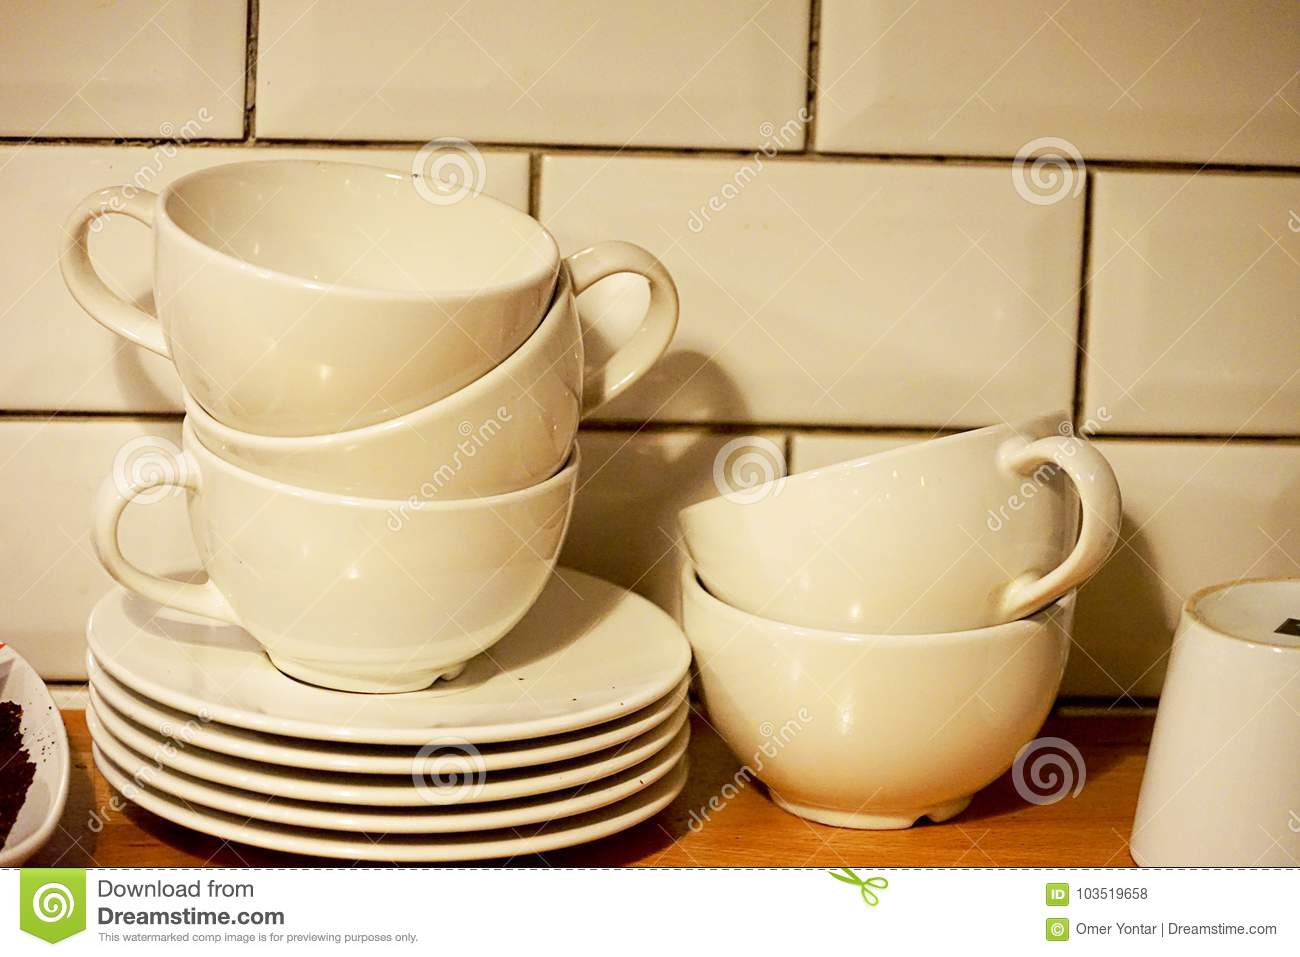 Where To Buy Nice Coffee Mugs Coffee Mugs Pile Stacked Within Stock Photo Image Of Mugs